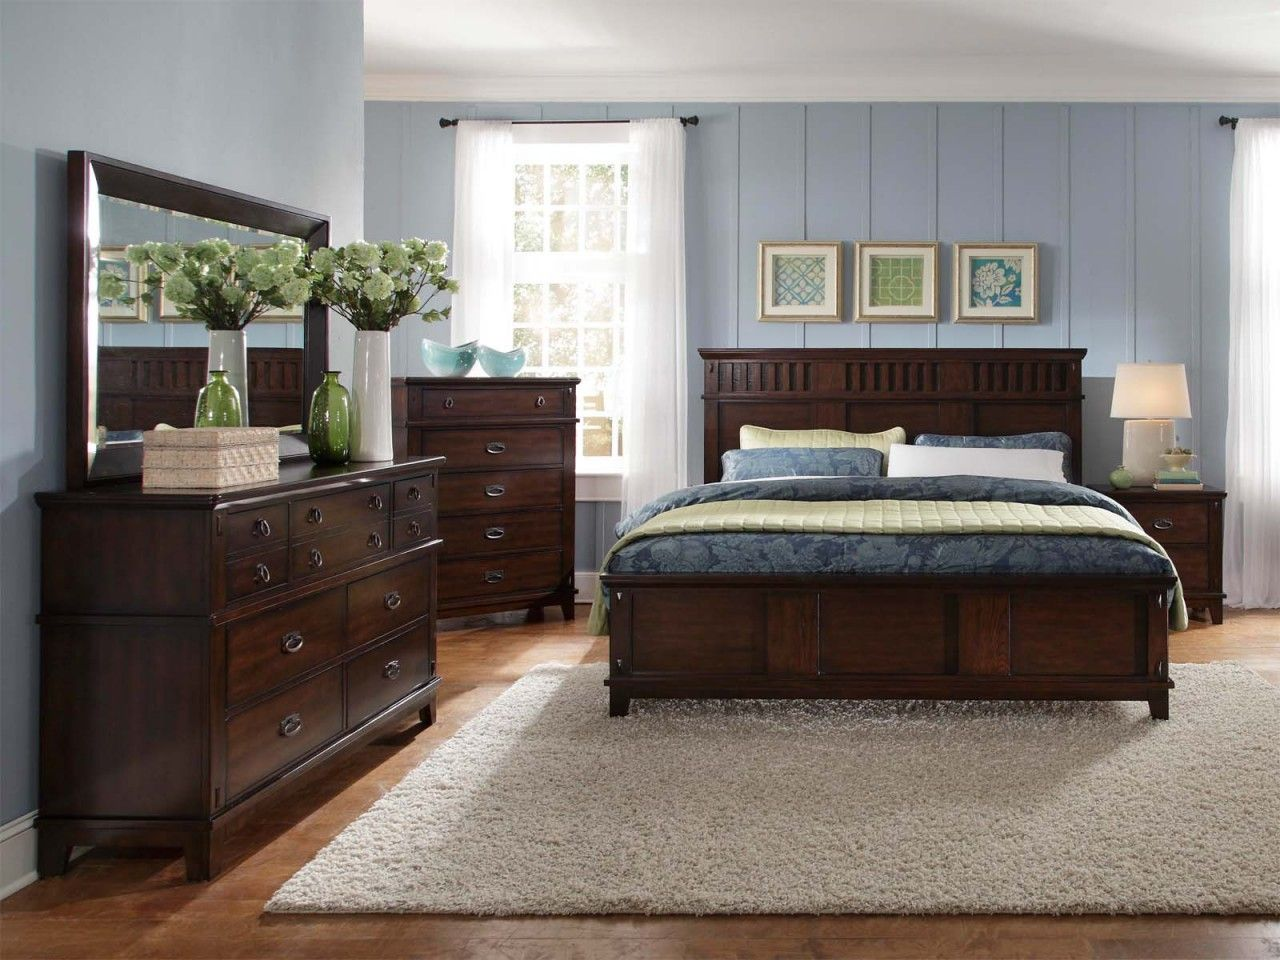 Bedroom Decorating Ideas Dark Brown Furniture dark brown bedroom furniture | bedroom furniture reviews | bedroom